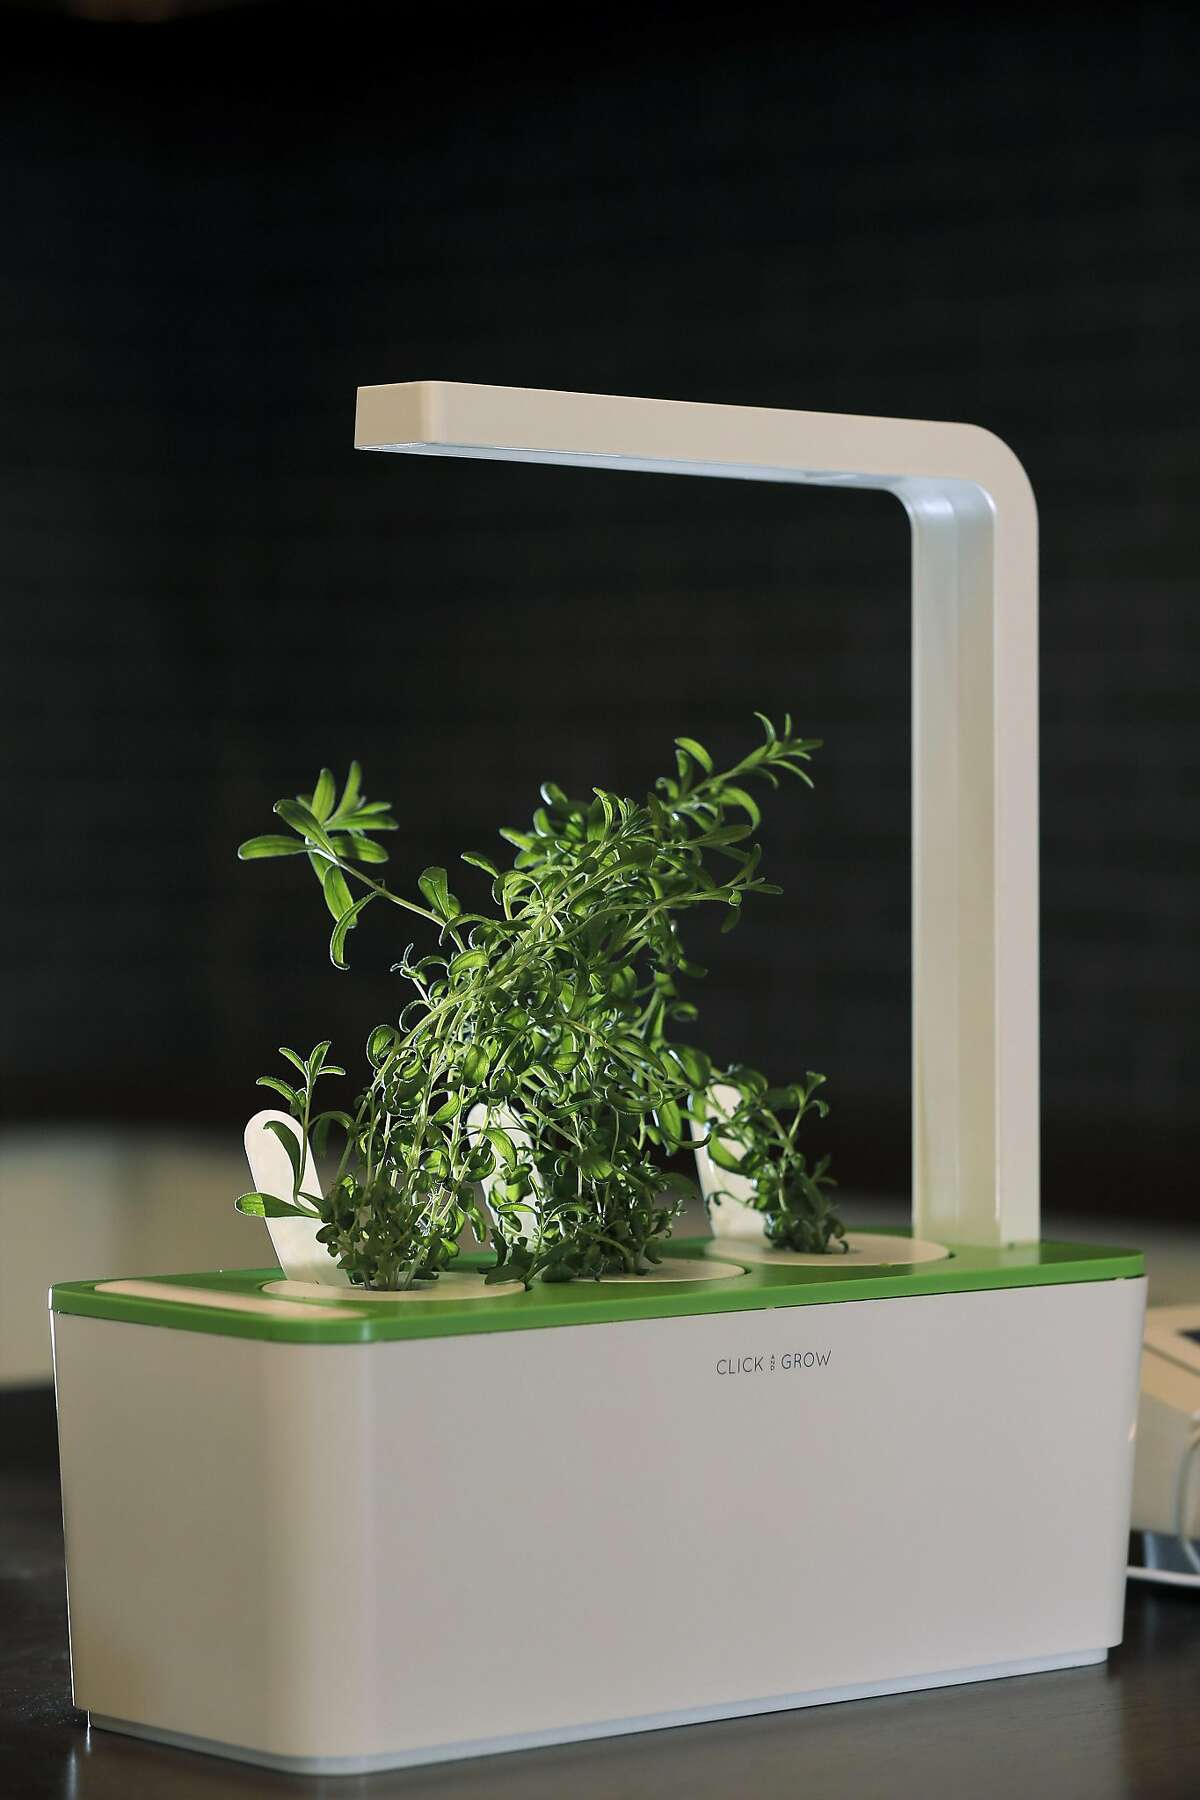 The Click & Grow Smart Herb Garden is one of several smart kitchen appliances on display at b8ta in Palo Alto, Calif., on Tuesday, August 30, 2016.